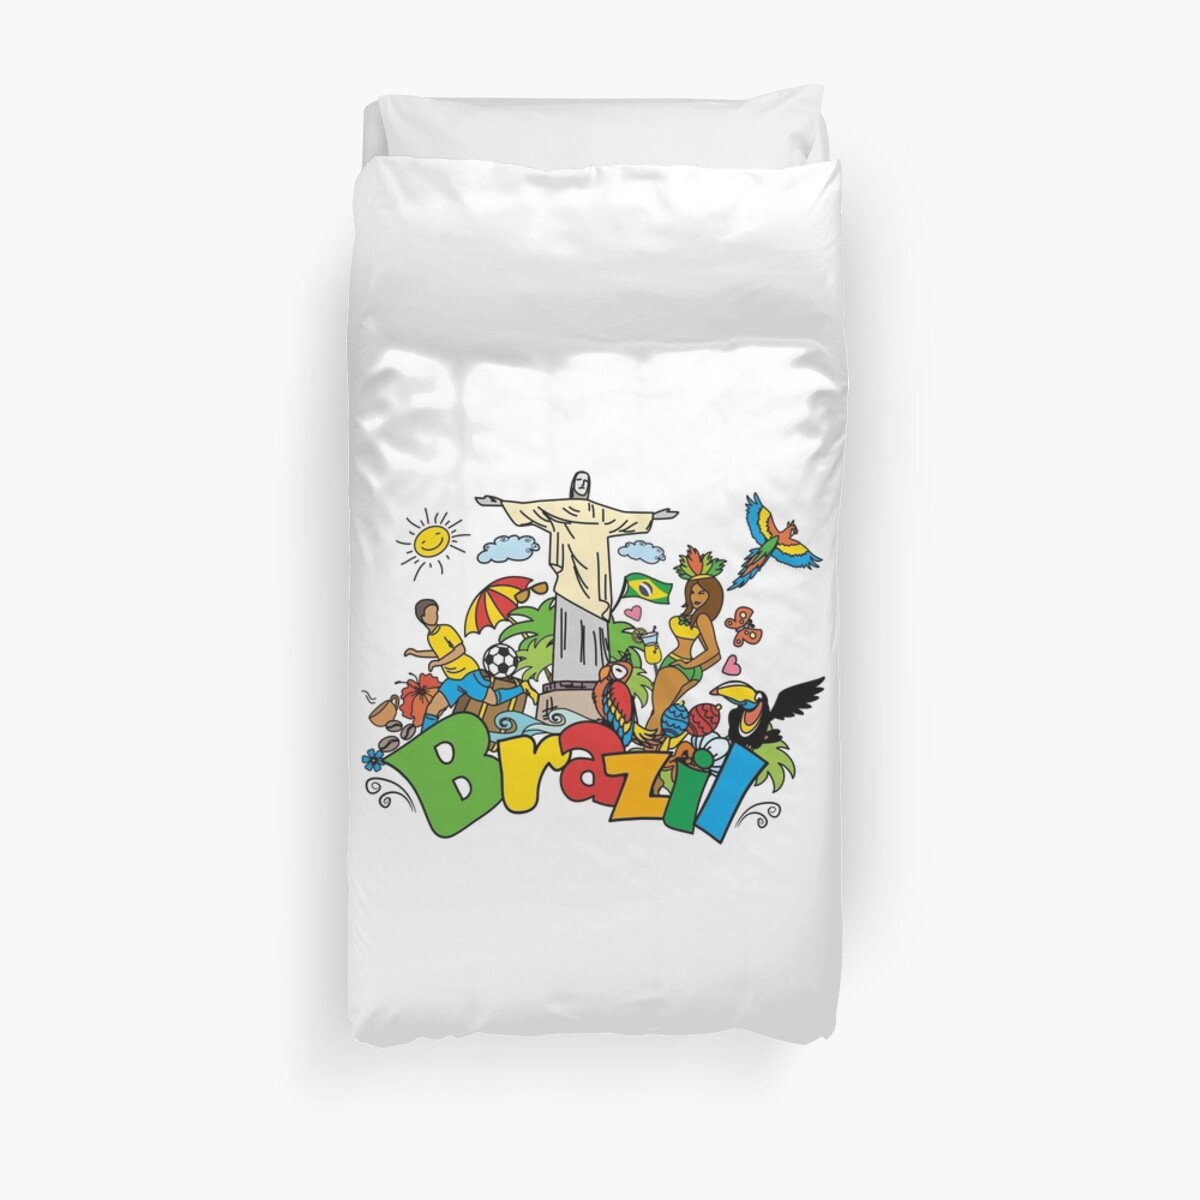 Funny Duvet Covers Funny Cartoon Brazil Picture Duvet Cover By Naum100